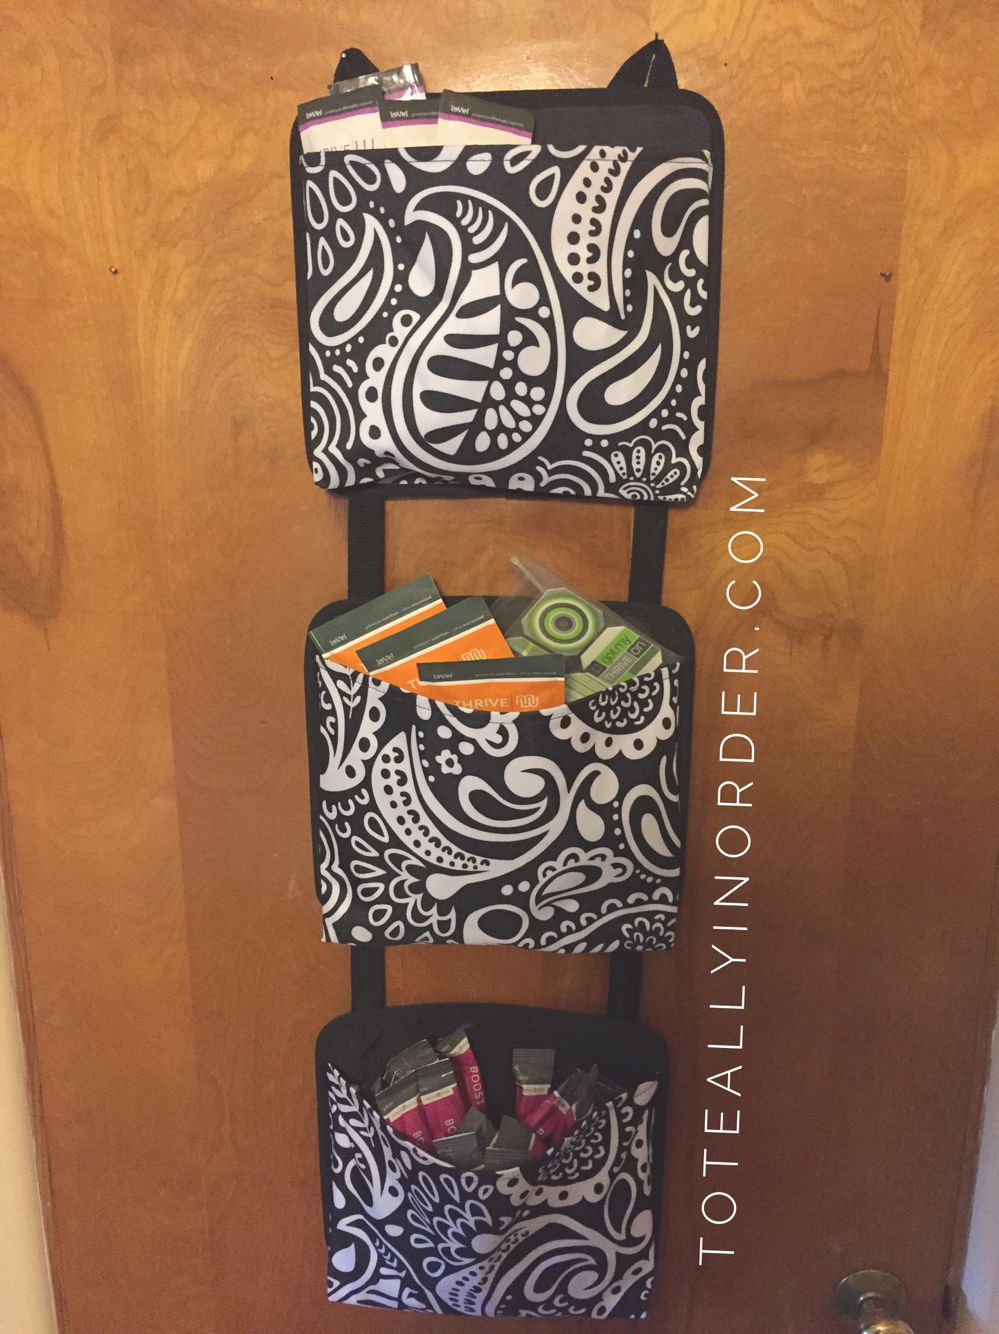 My thrive by level stays neatly hanging on my office door using